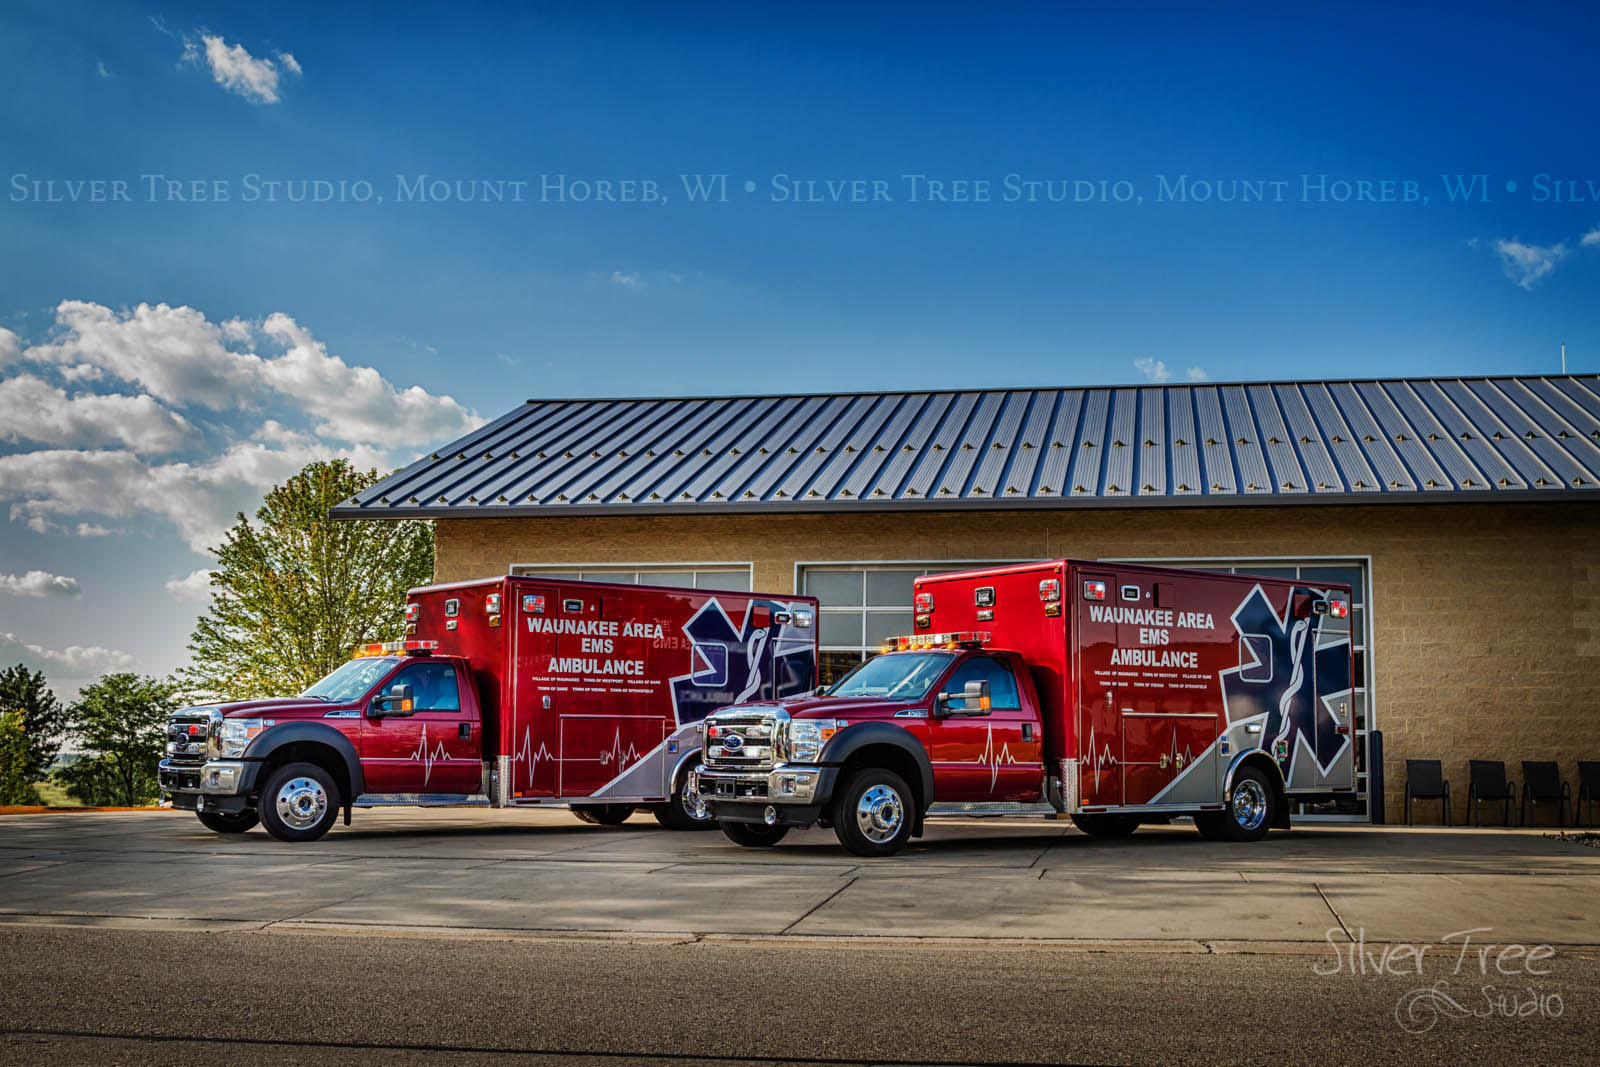 Commissioned for Waunakee Area EMS by ambulance Designer,Moonstruck Media Production